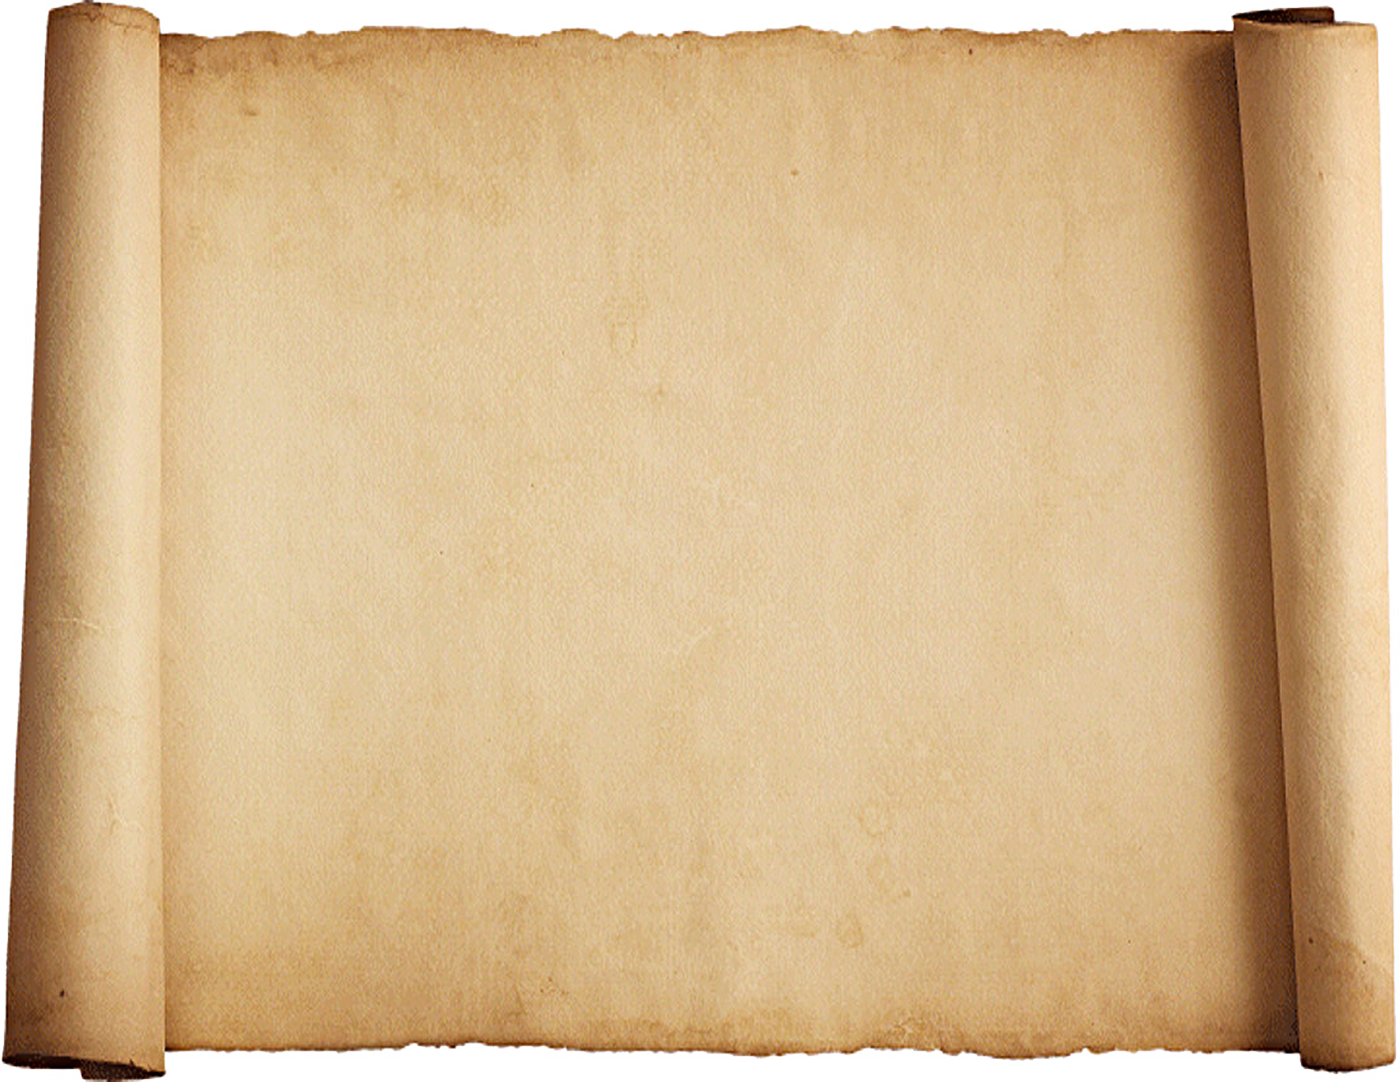 parchment_scroll_background.png • Българска история